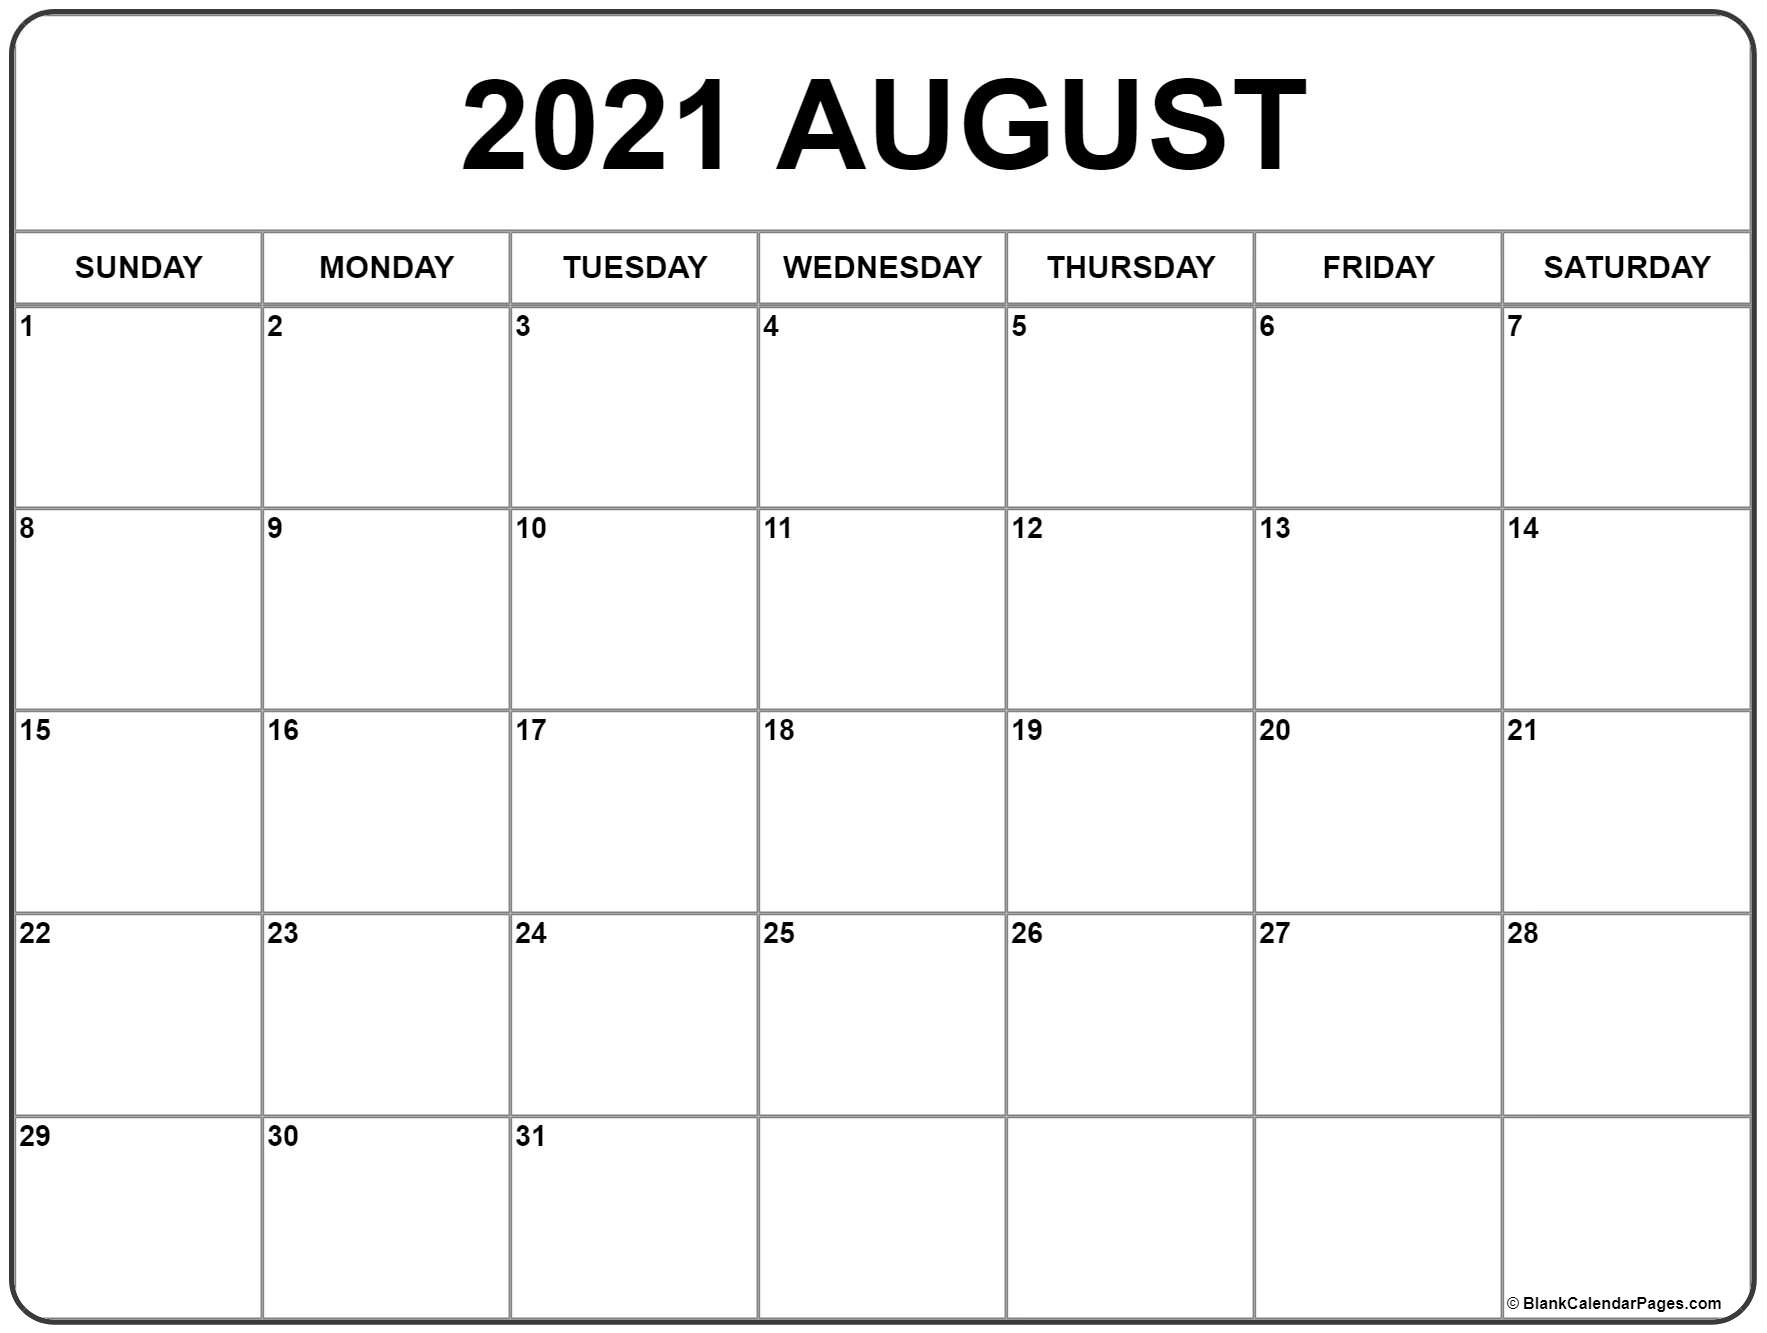 August 2021 Calendar | Free Printable Monthly Calendars  Free Monthly Calendar Template 2021